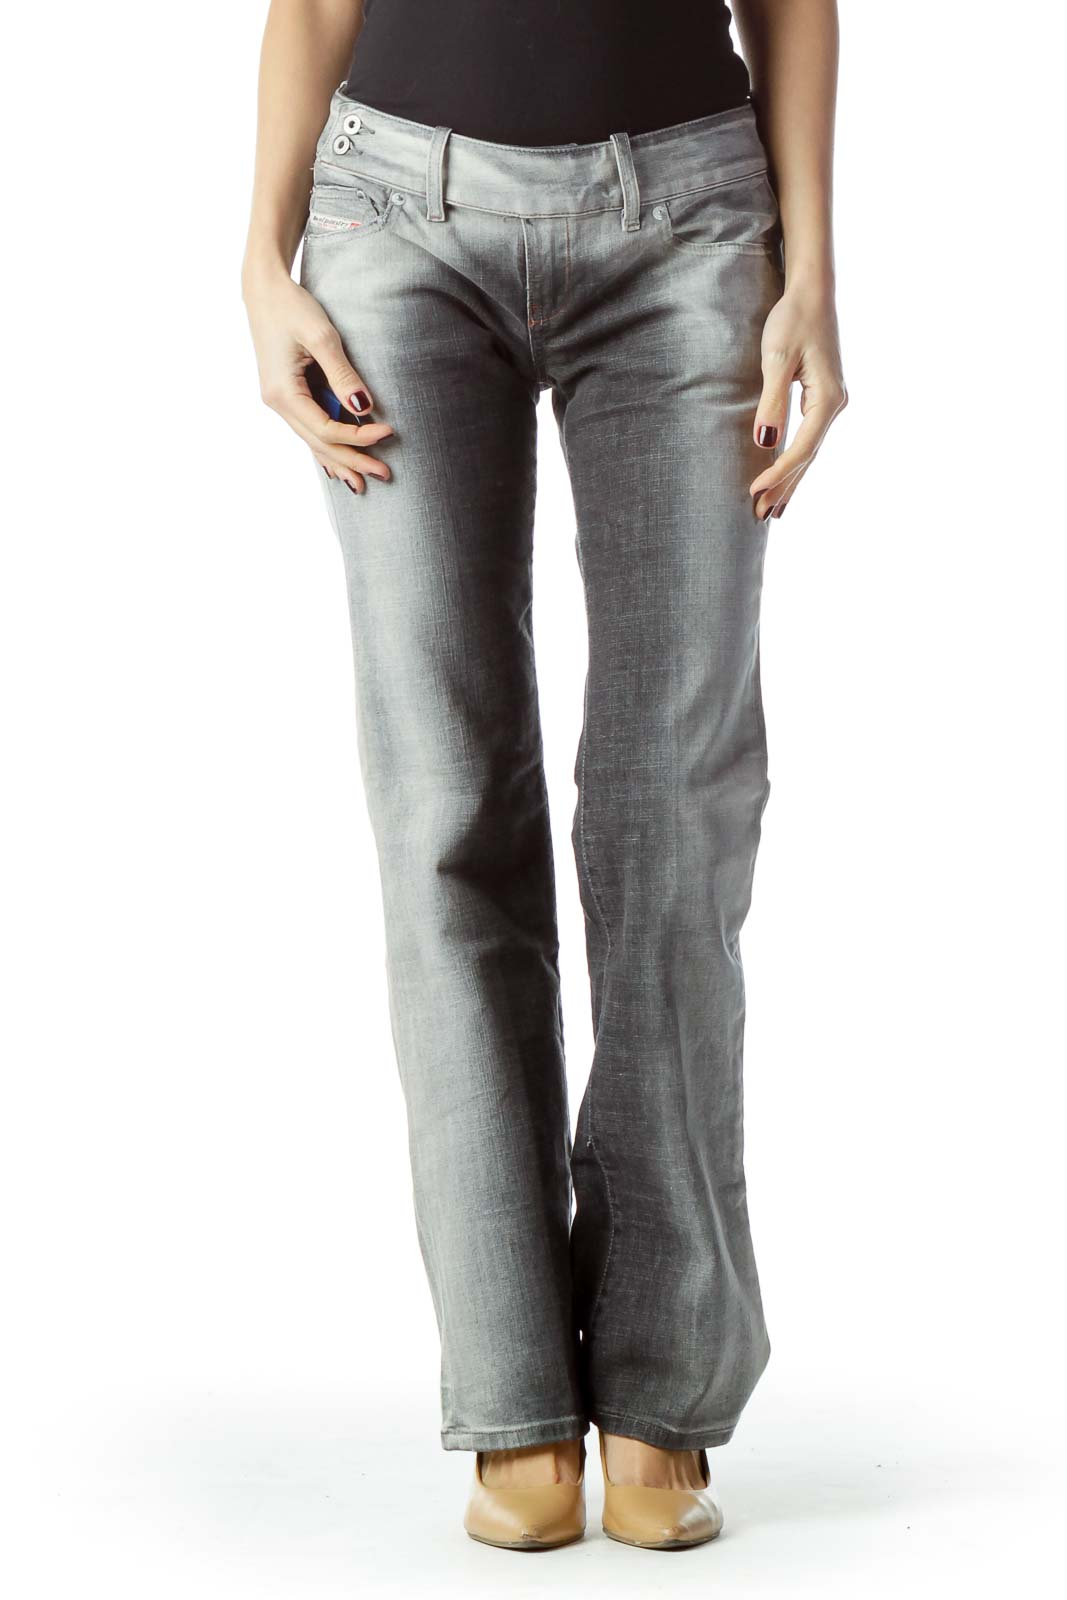 Two-Tone Gray Denim Jeans Front